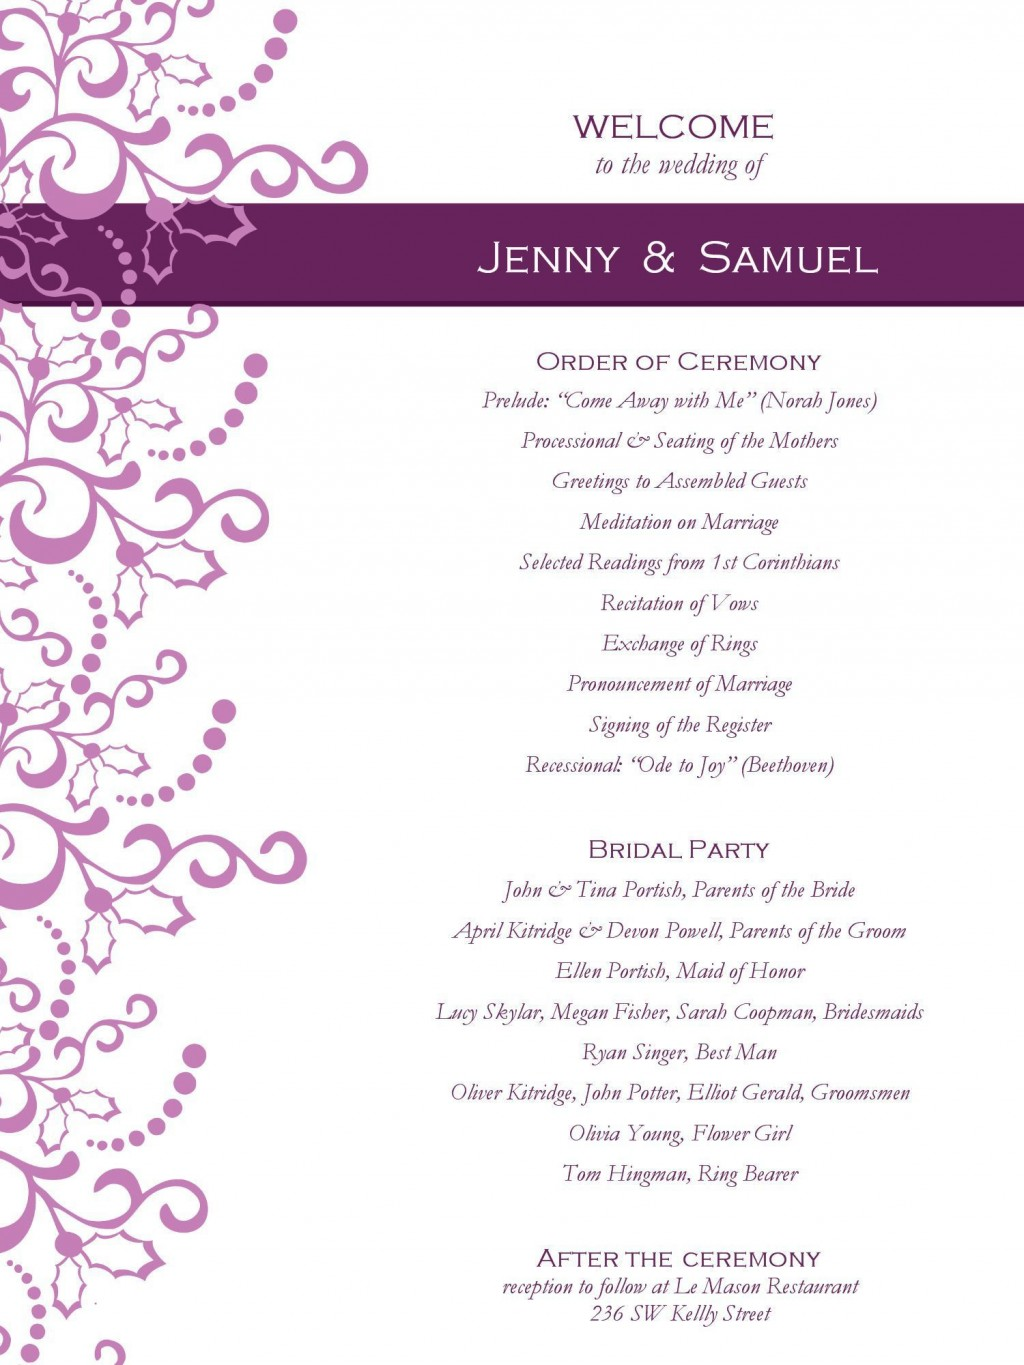 001 Awesome Free Template For Wedding Ceremony Program Inspiration Large